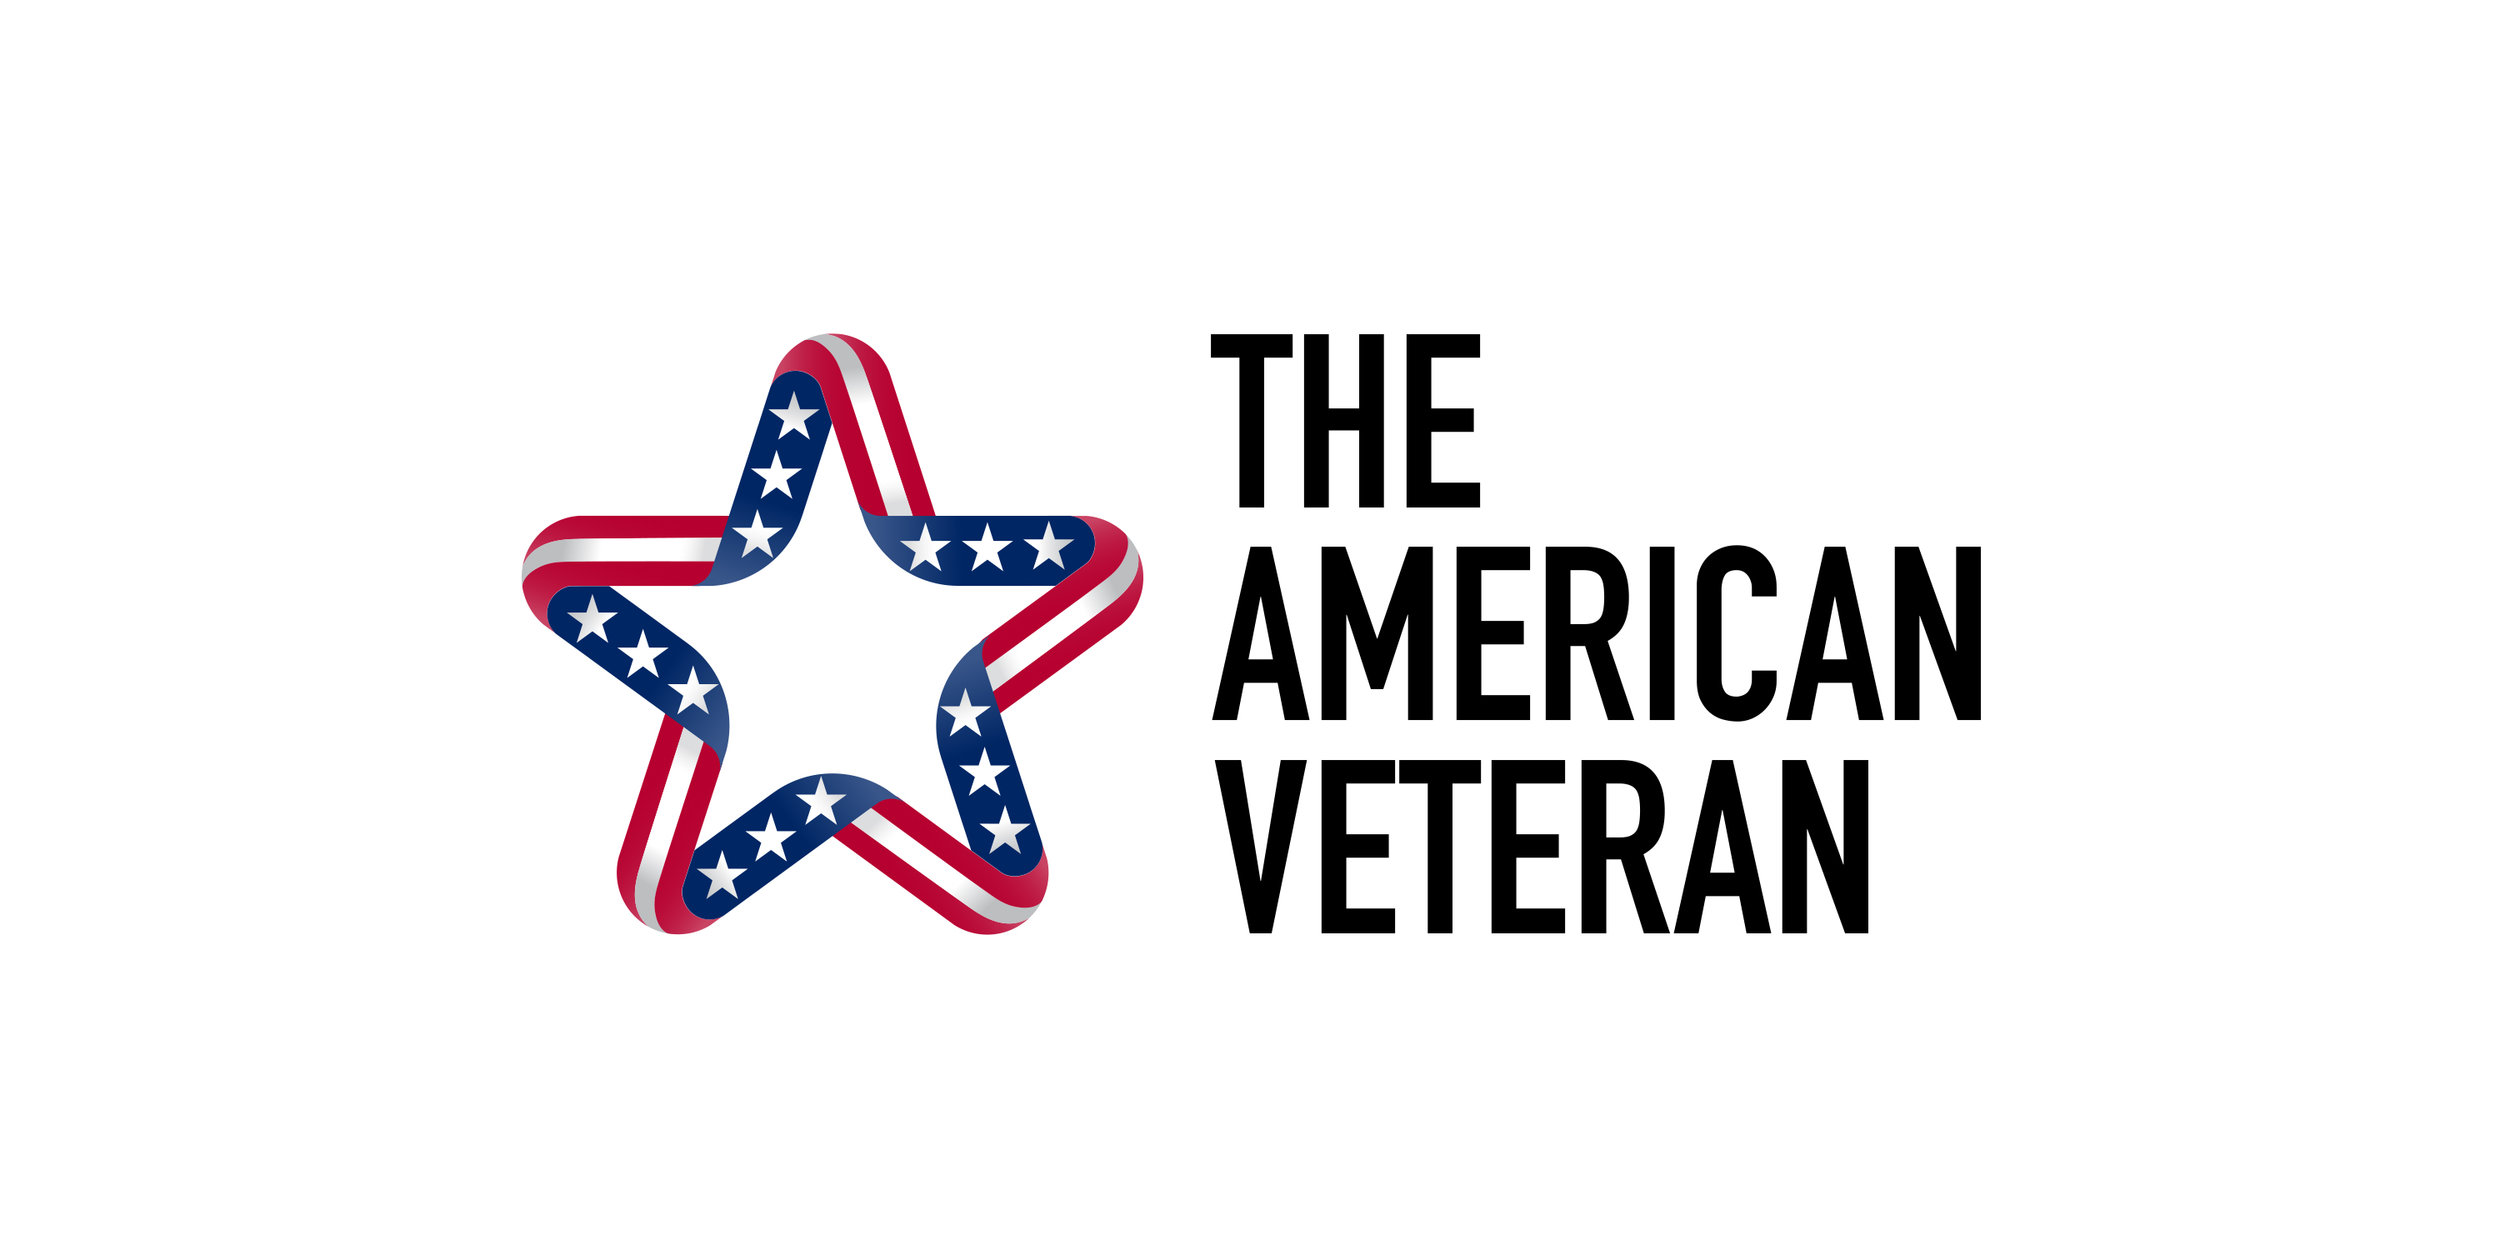 Web_Samples_AmericanVet_Logos_5.jpg